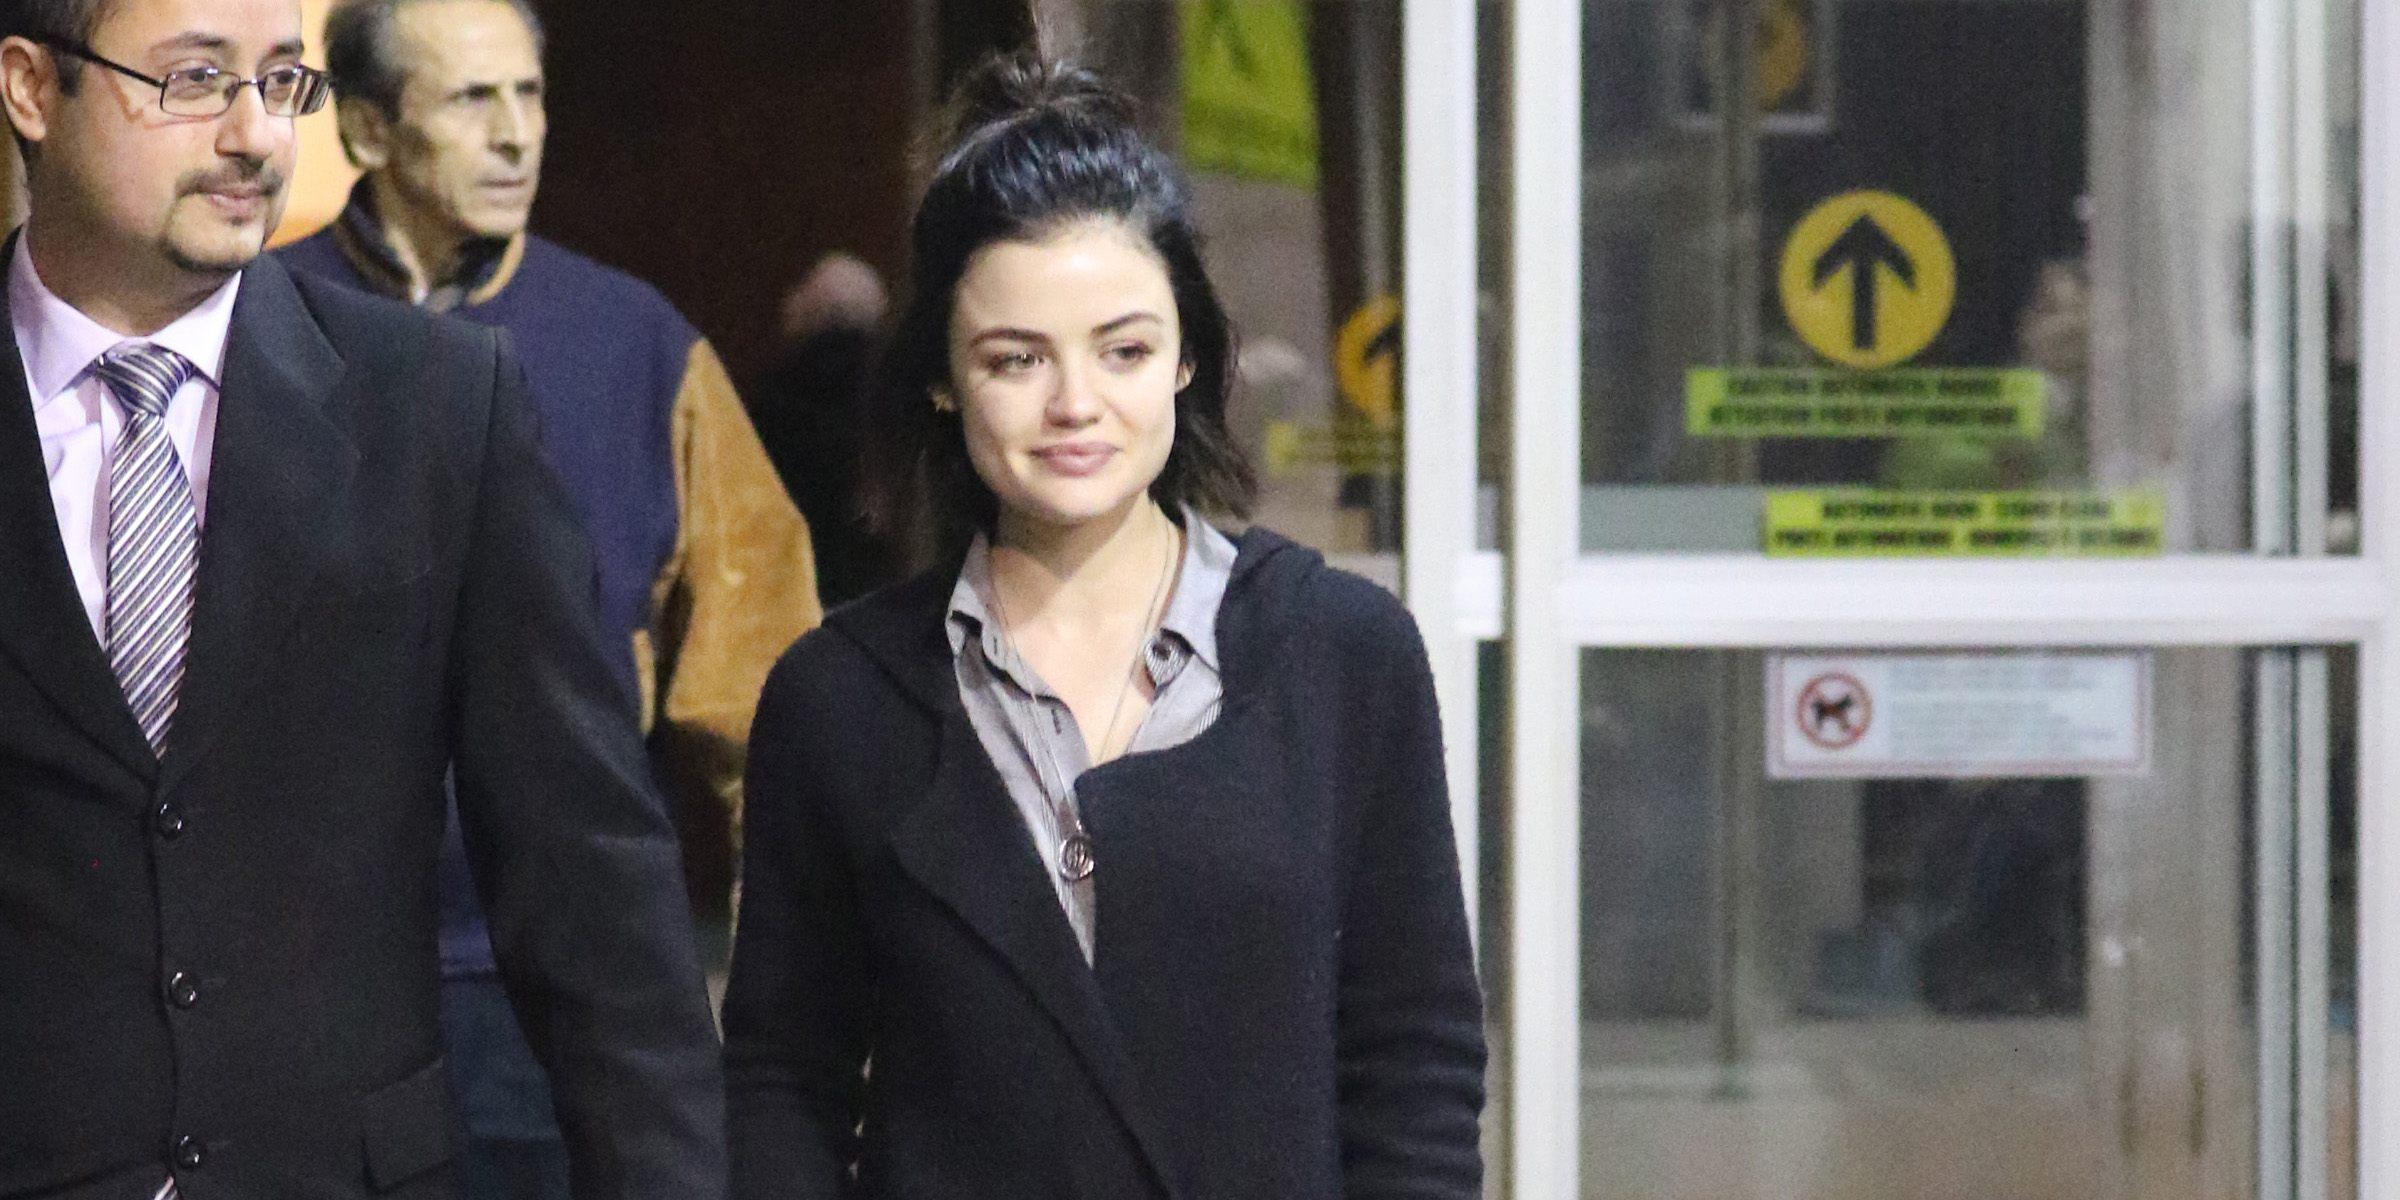 Spotted: Lucy Hale arrives in Vancouver to film 'Life Sentence' (PHOTOS)